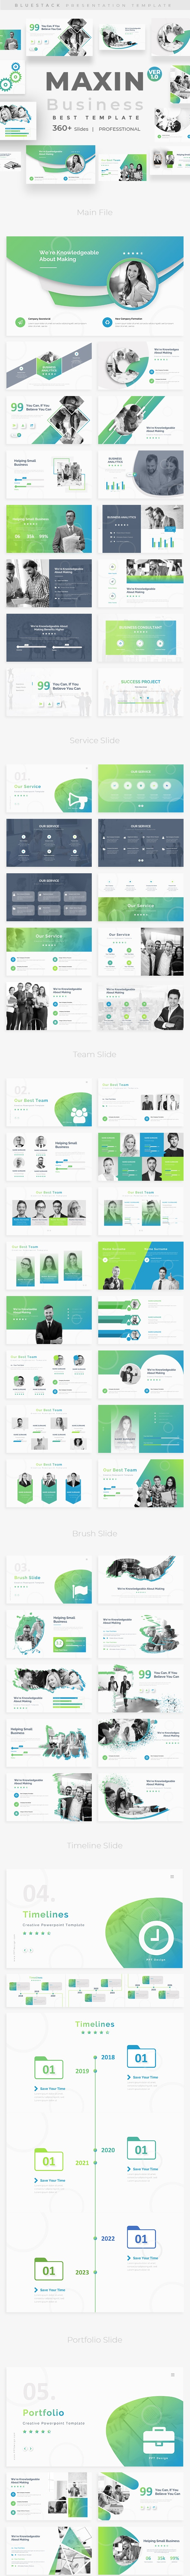 Maxin Business Powerpoint Template - Business PowerPoint Templates